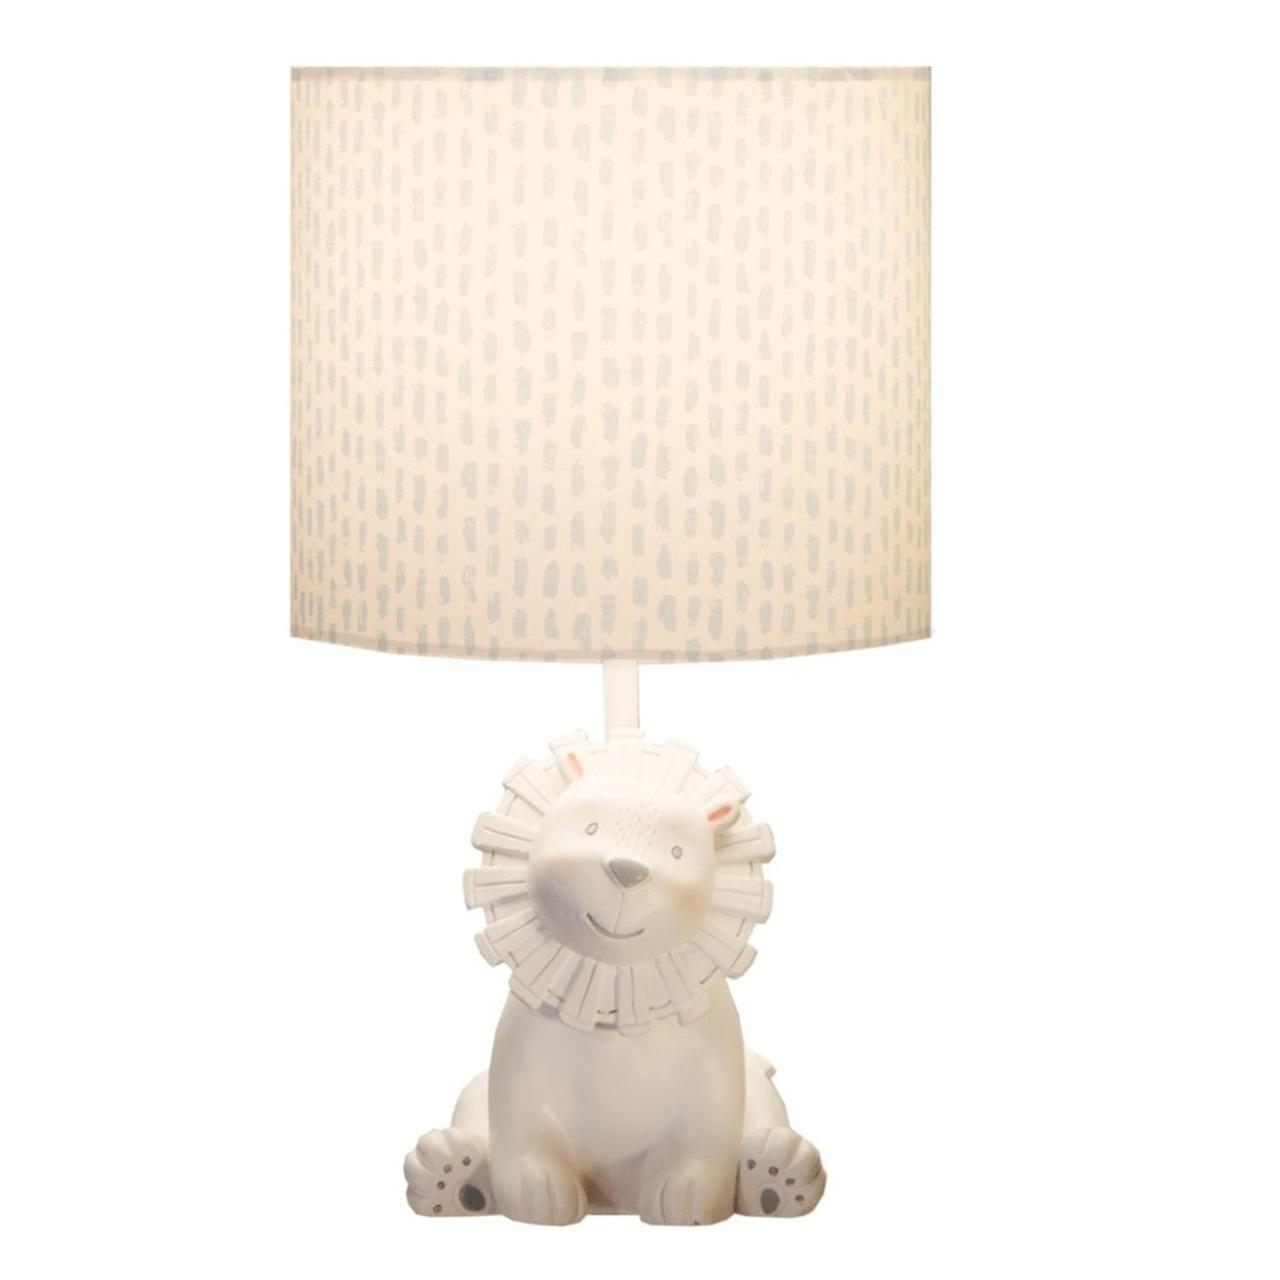 pack white ivory resin lion accent decorative table lamp lamps and mid century kitchen chairs dining room decor unique end tables best drum throne chest drawers malm side black